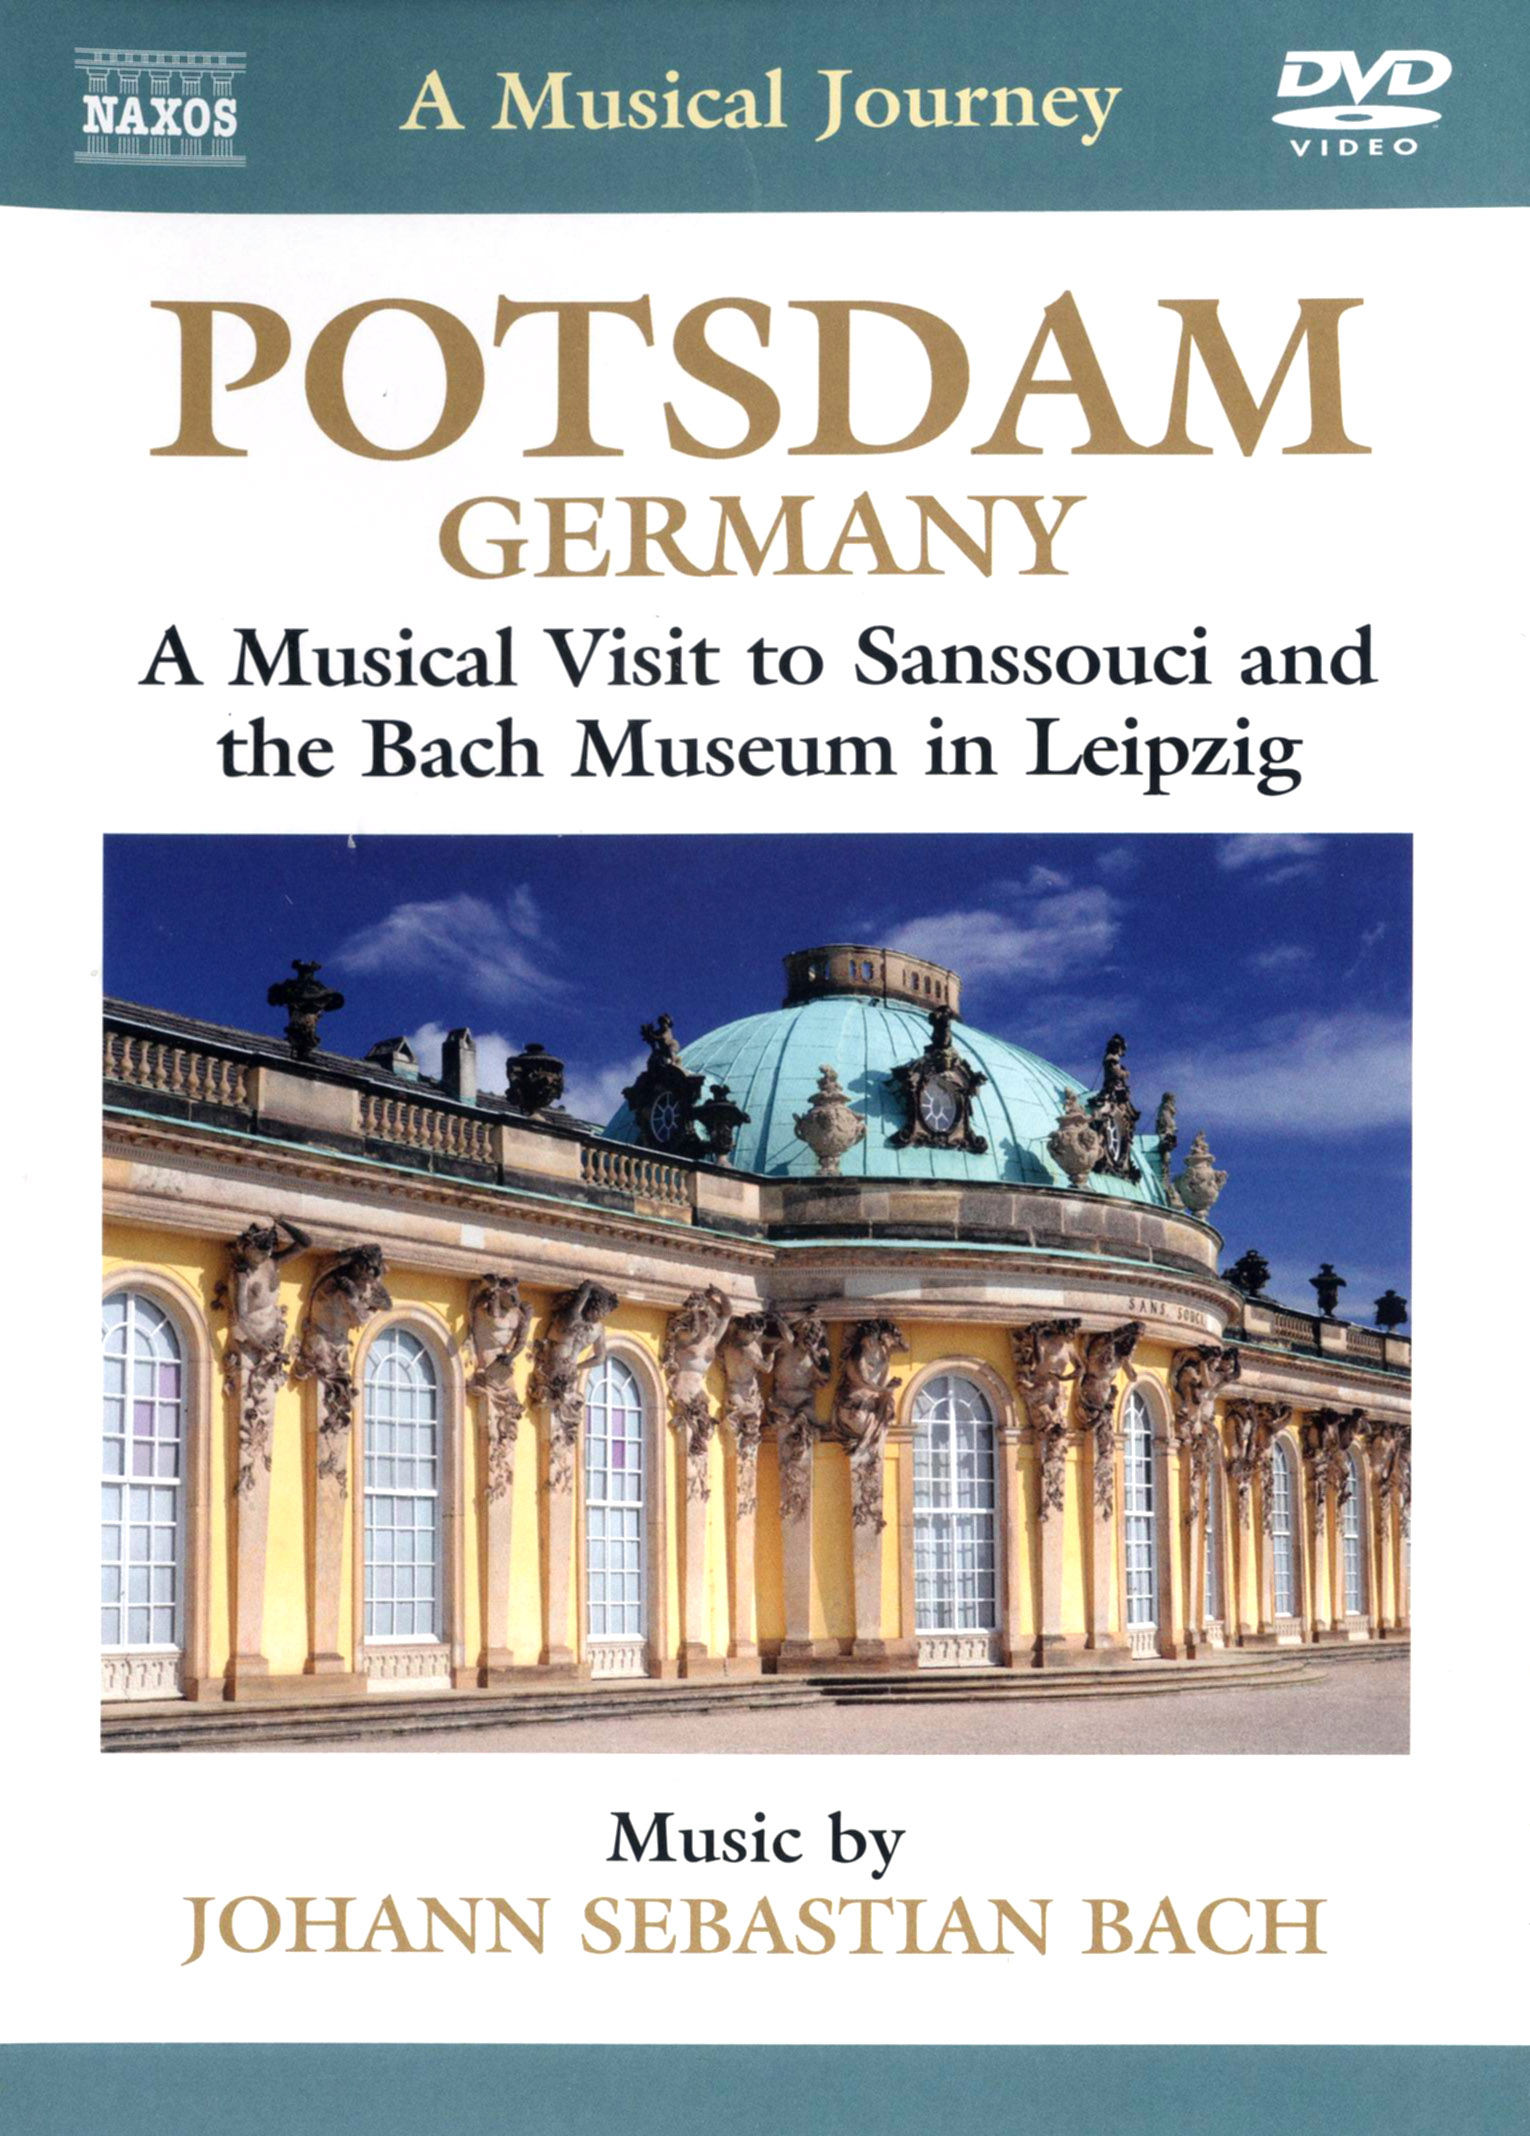 A Musical Journey: Potsdam, Germany